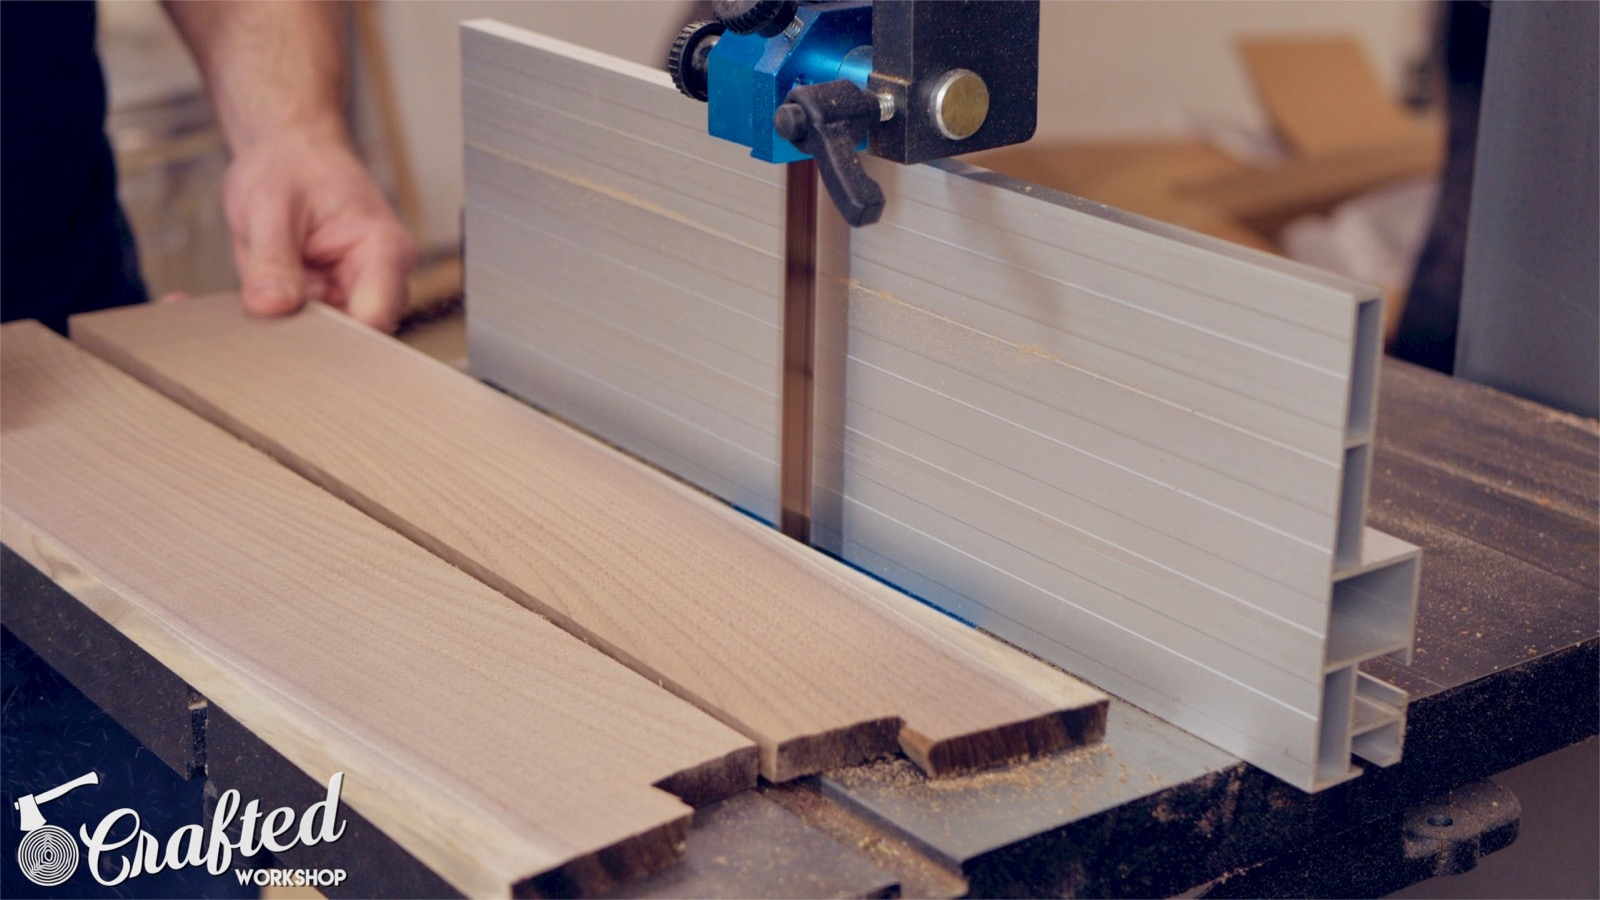 resawing walnut wood on a laguna 1412 bandsaw with resaw king blade woodworking